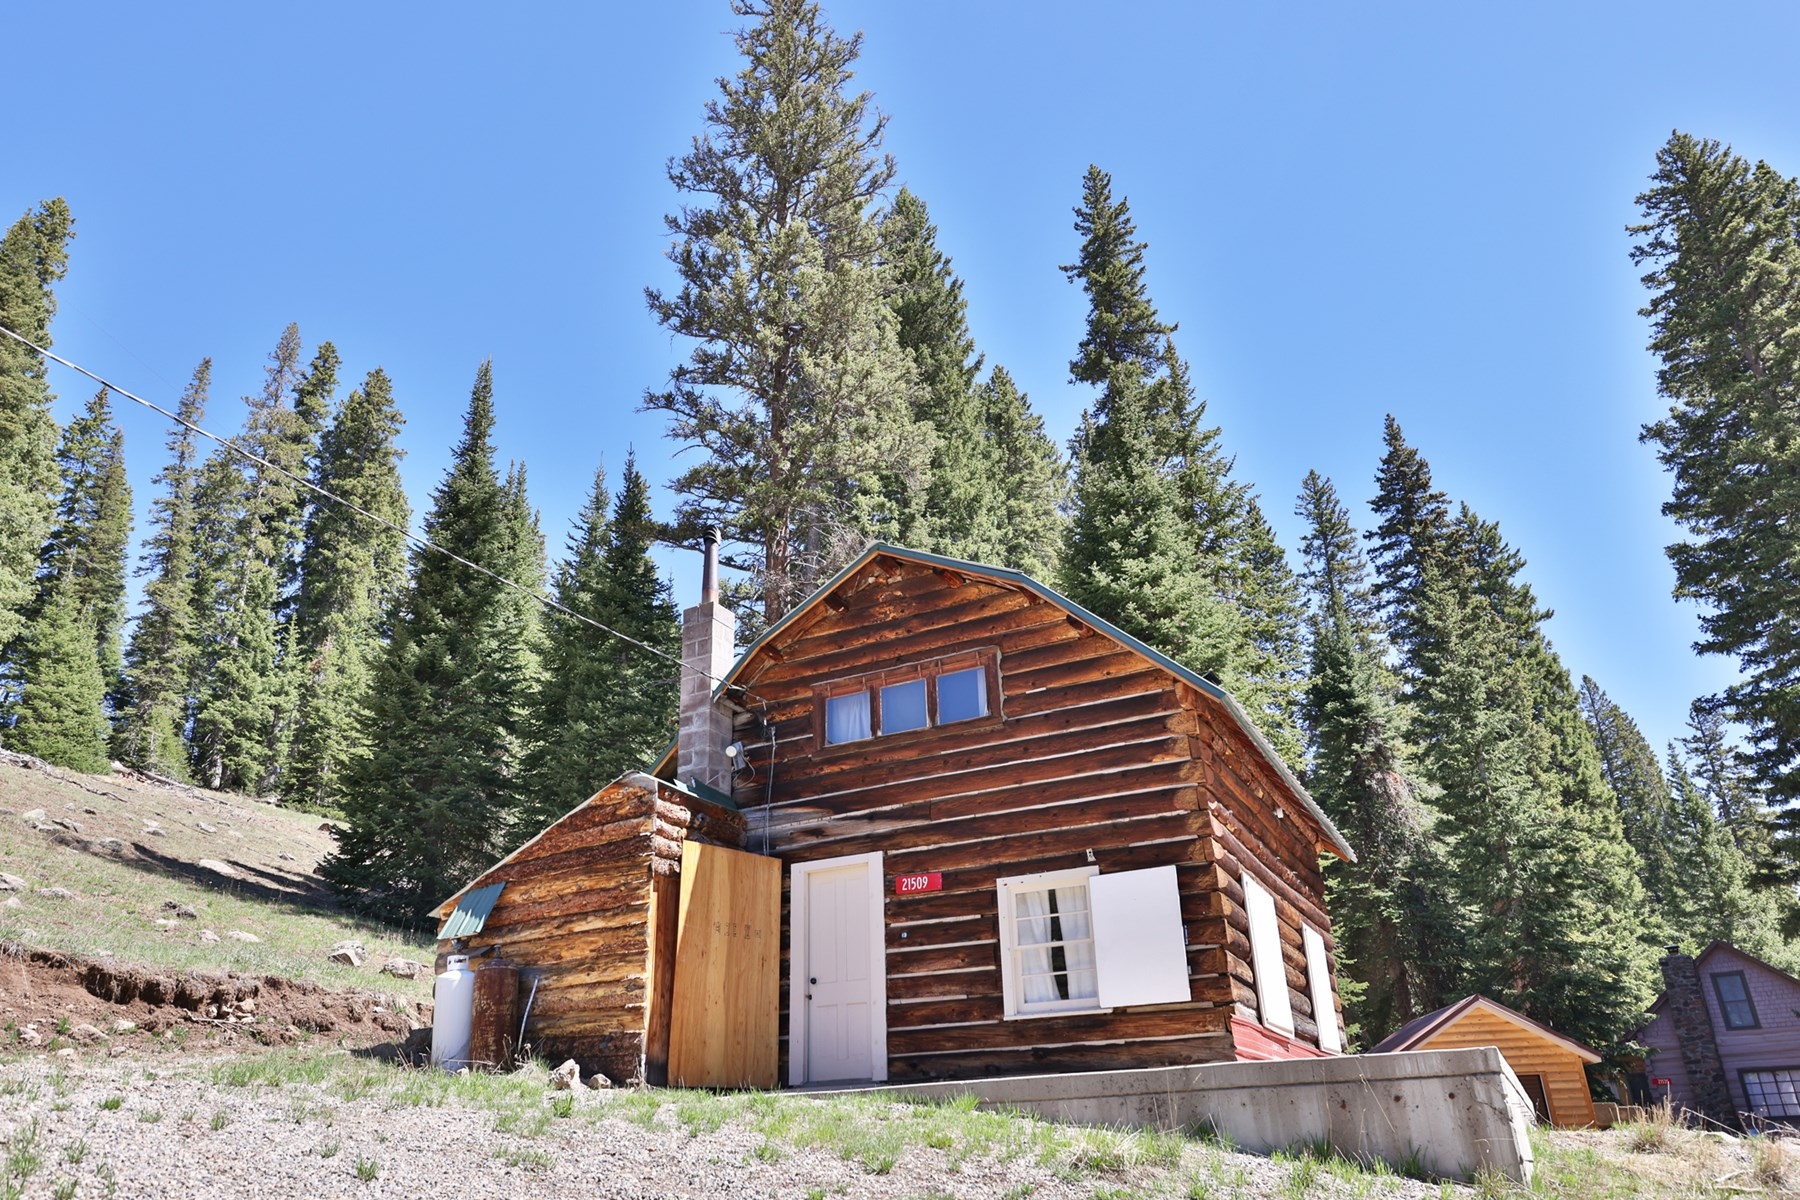 Log Cabin on Grand Mesa National Forest